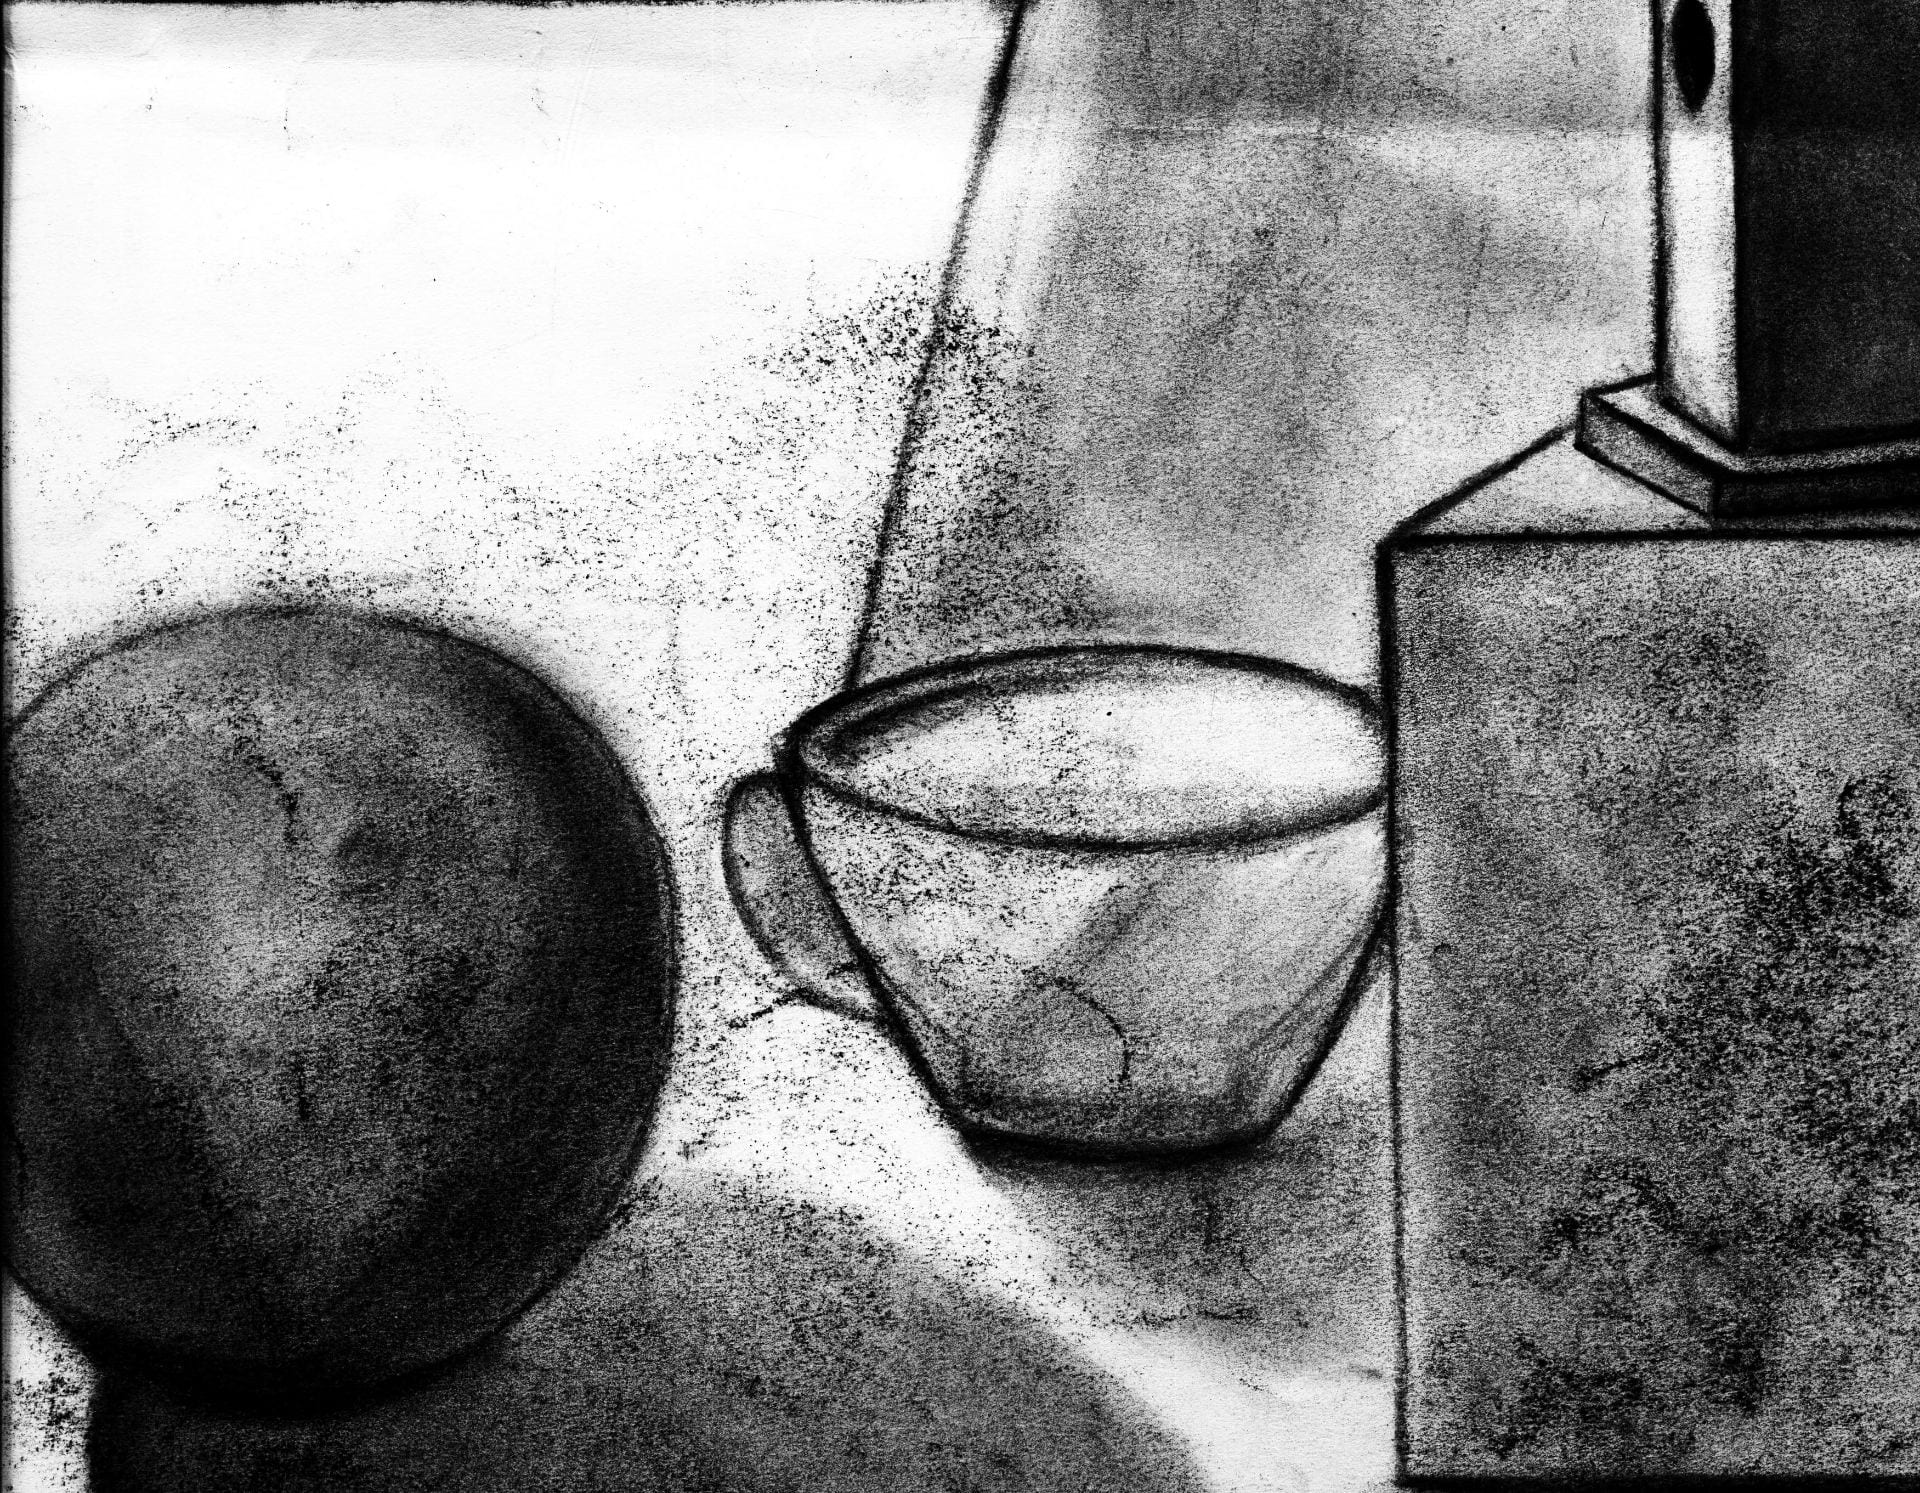 Charcoal: Drawing Objects